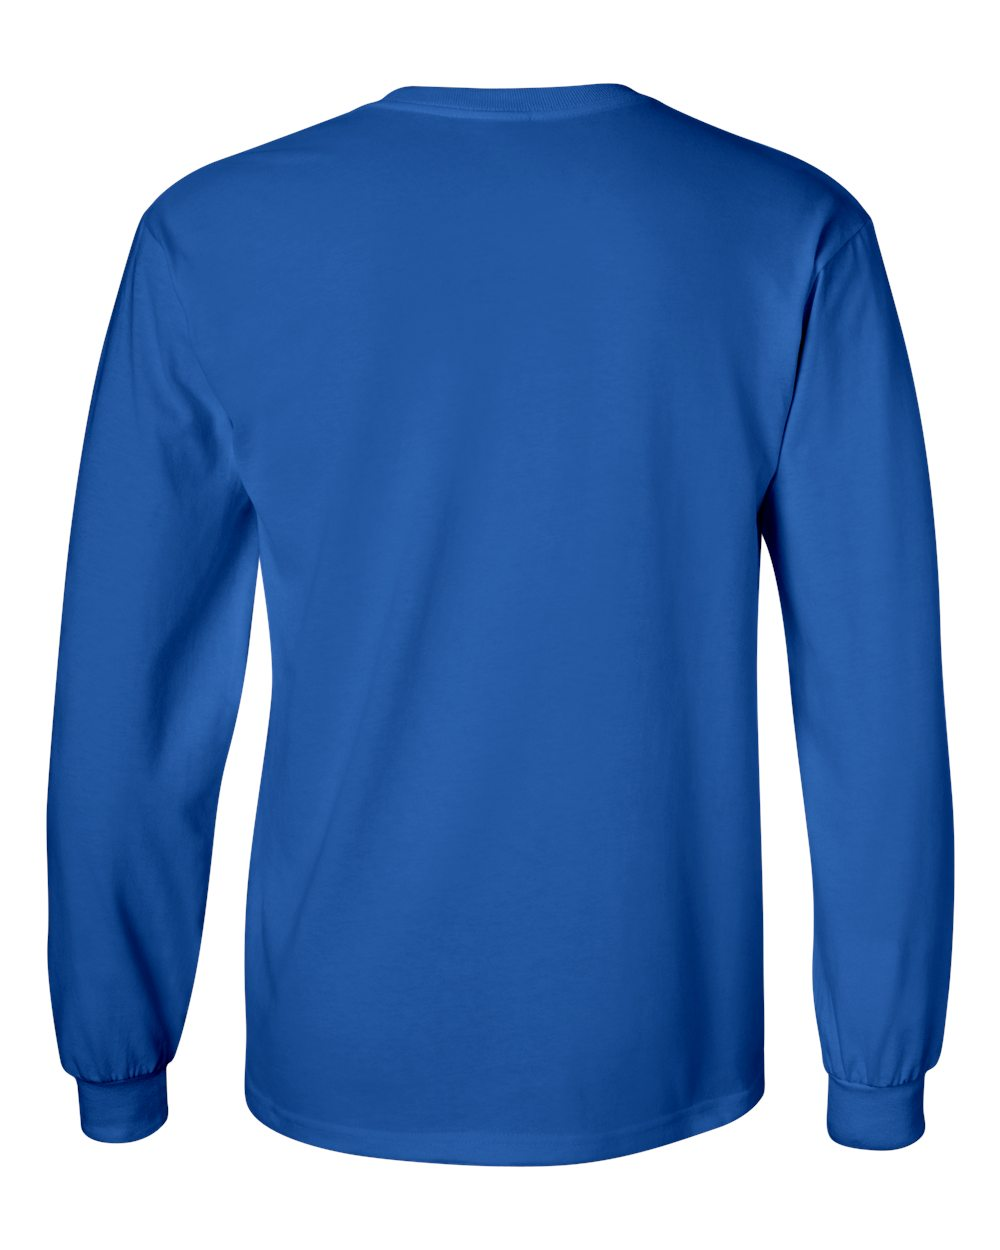 Gildan-Men-039-s-Ultra-Cotton-6-oz-Long-Sleeve-T-Shirt-G240-S-5XL thumbnail 84